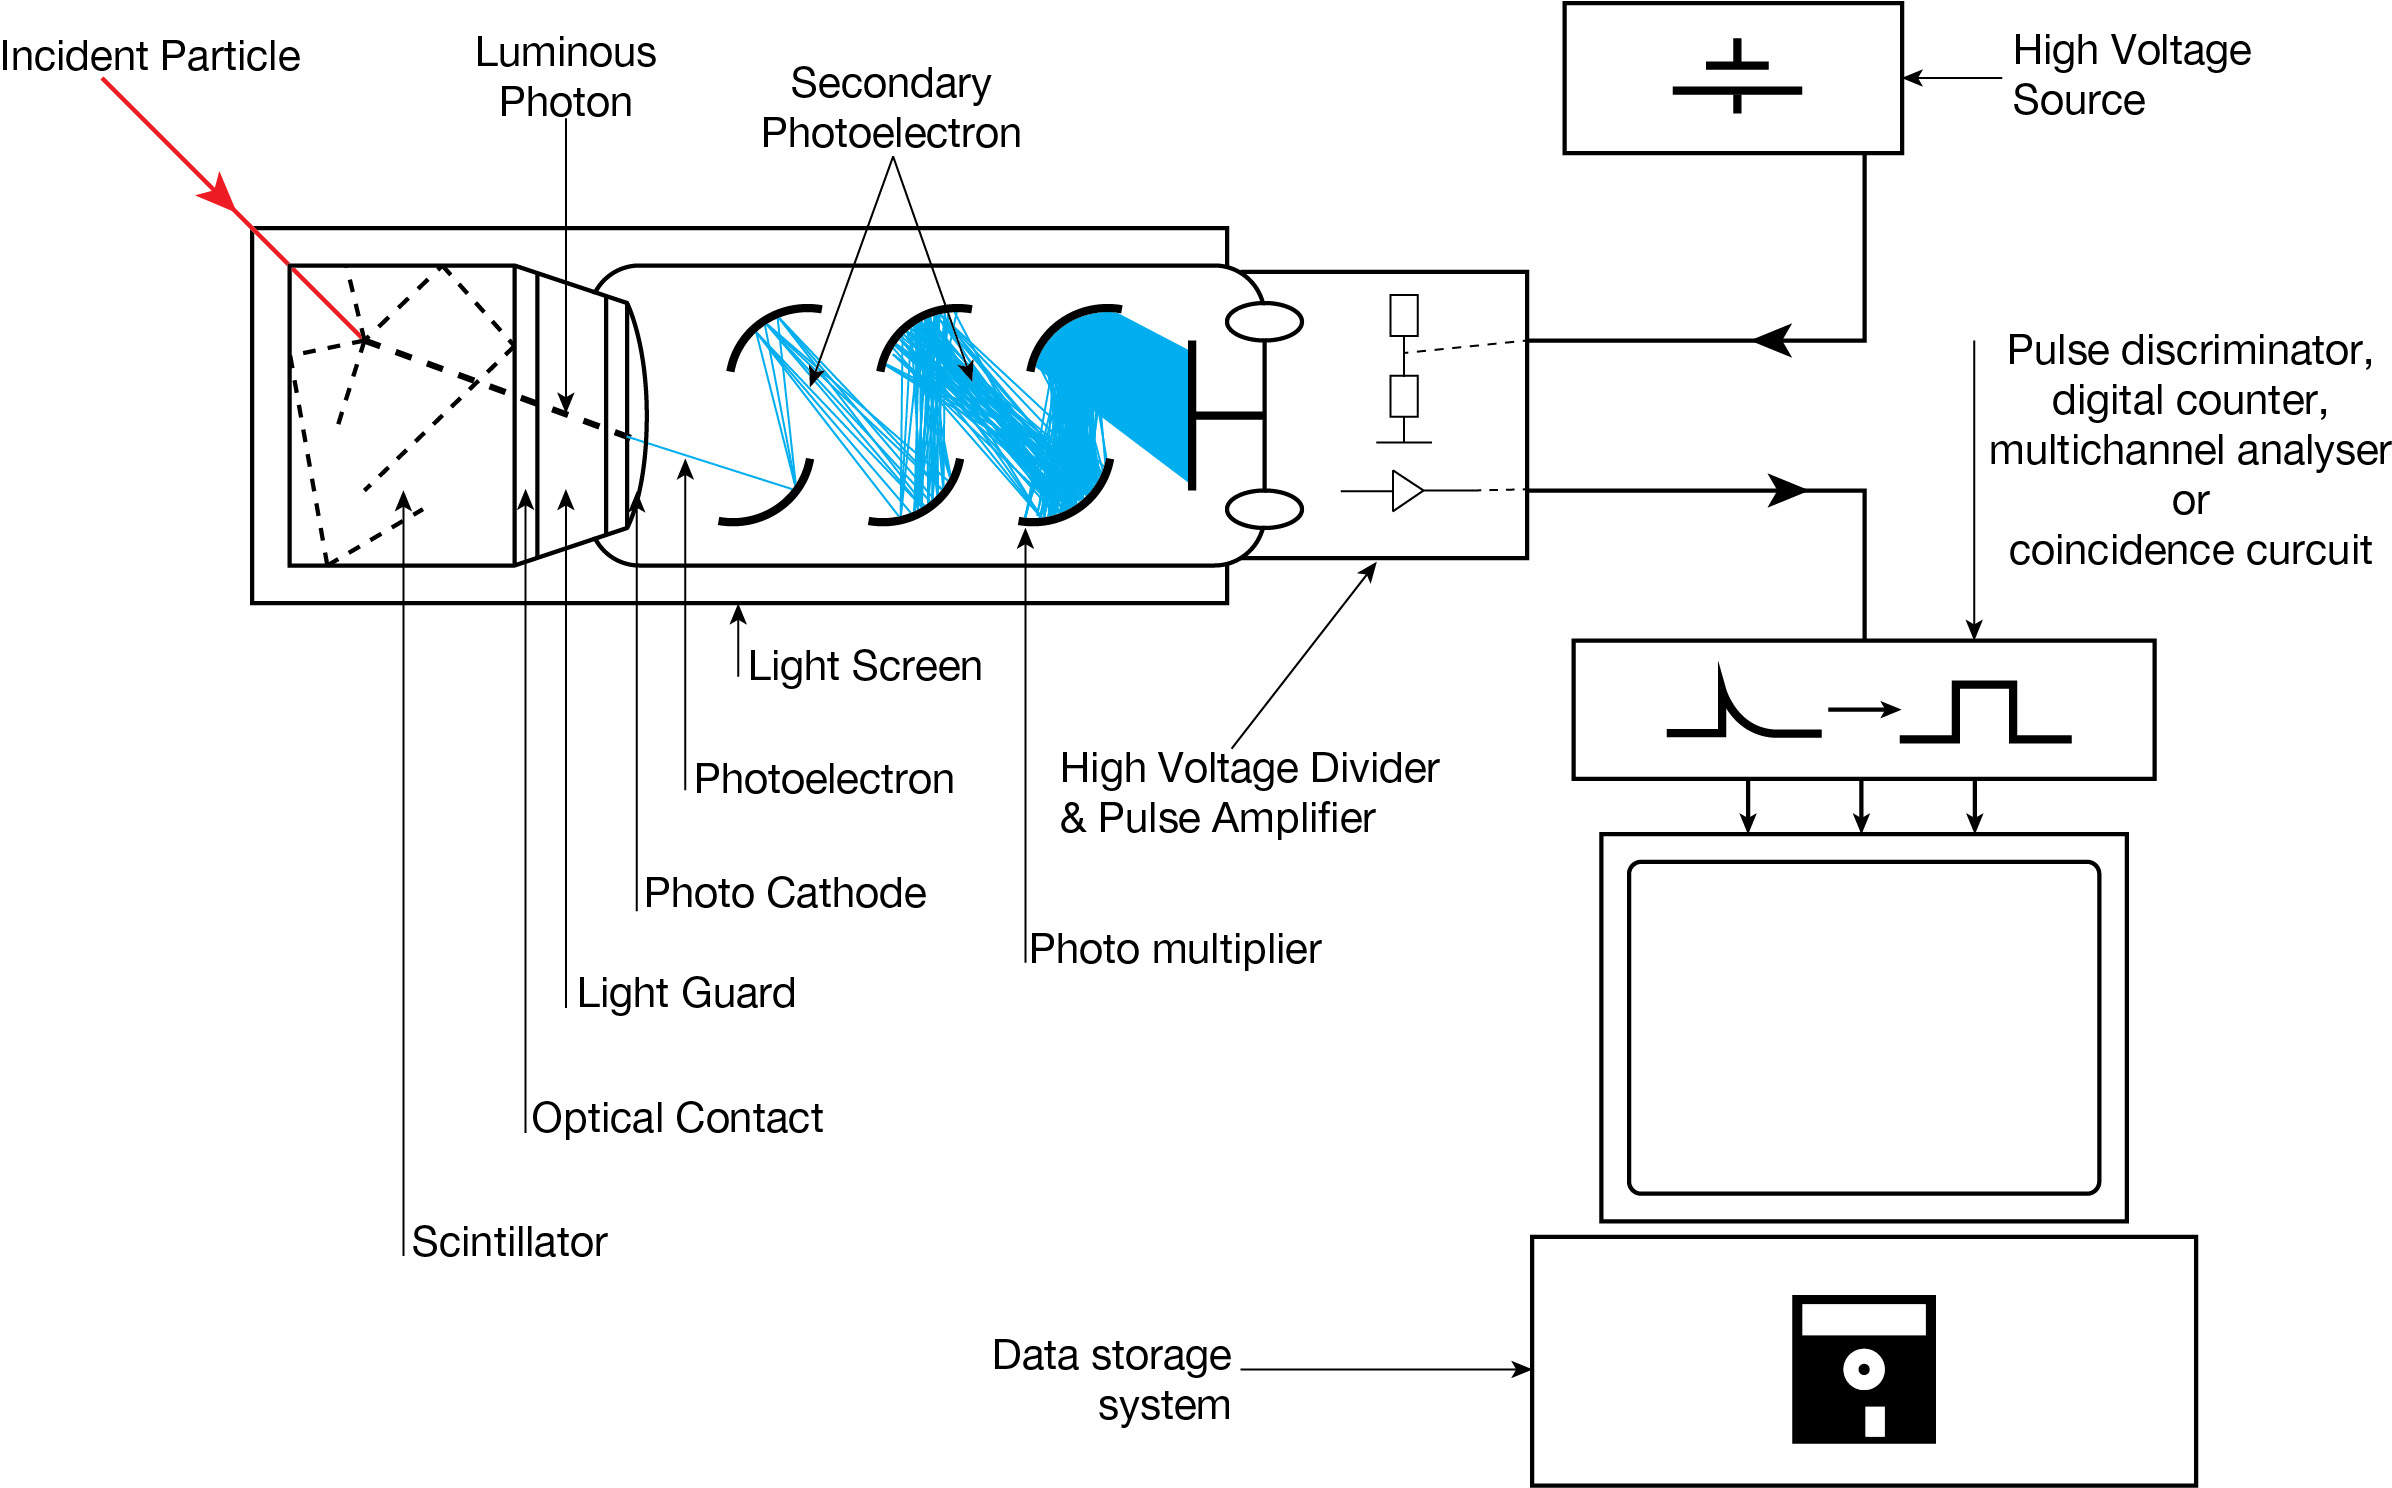 scintillation counter wikipedia besides diagram of the experimental setup showing fiber and scintillator moreover schematic diagram of sof detector system the sof detector made together with gce physics nuclear medicine gamma camera besides scintillation counter wikiwand. on scintillator diagram